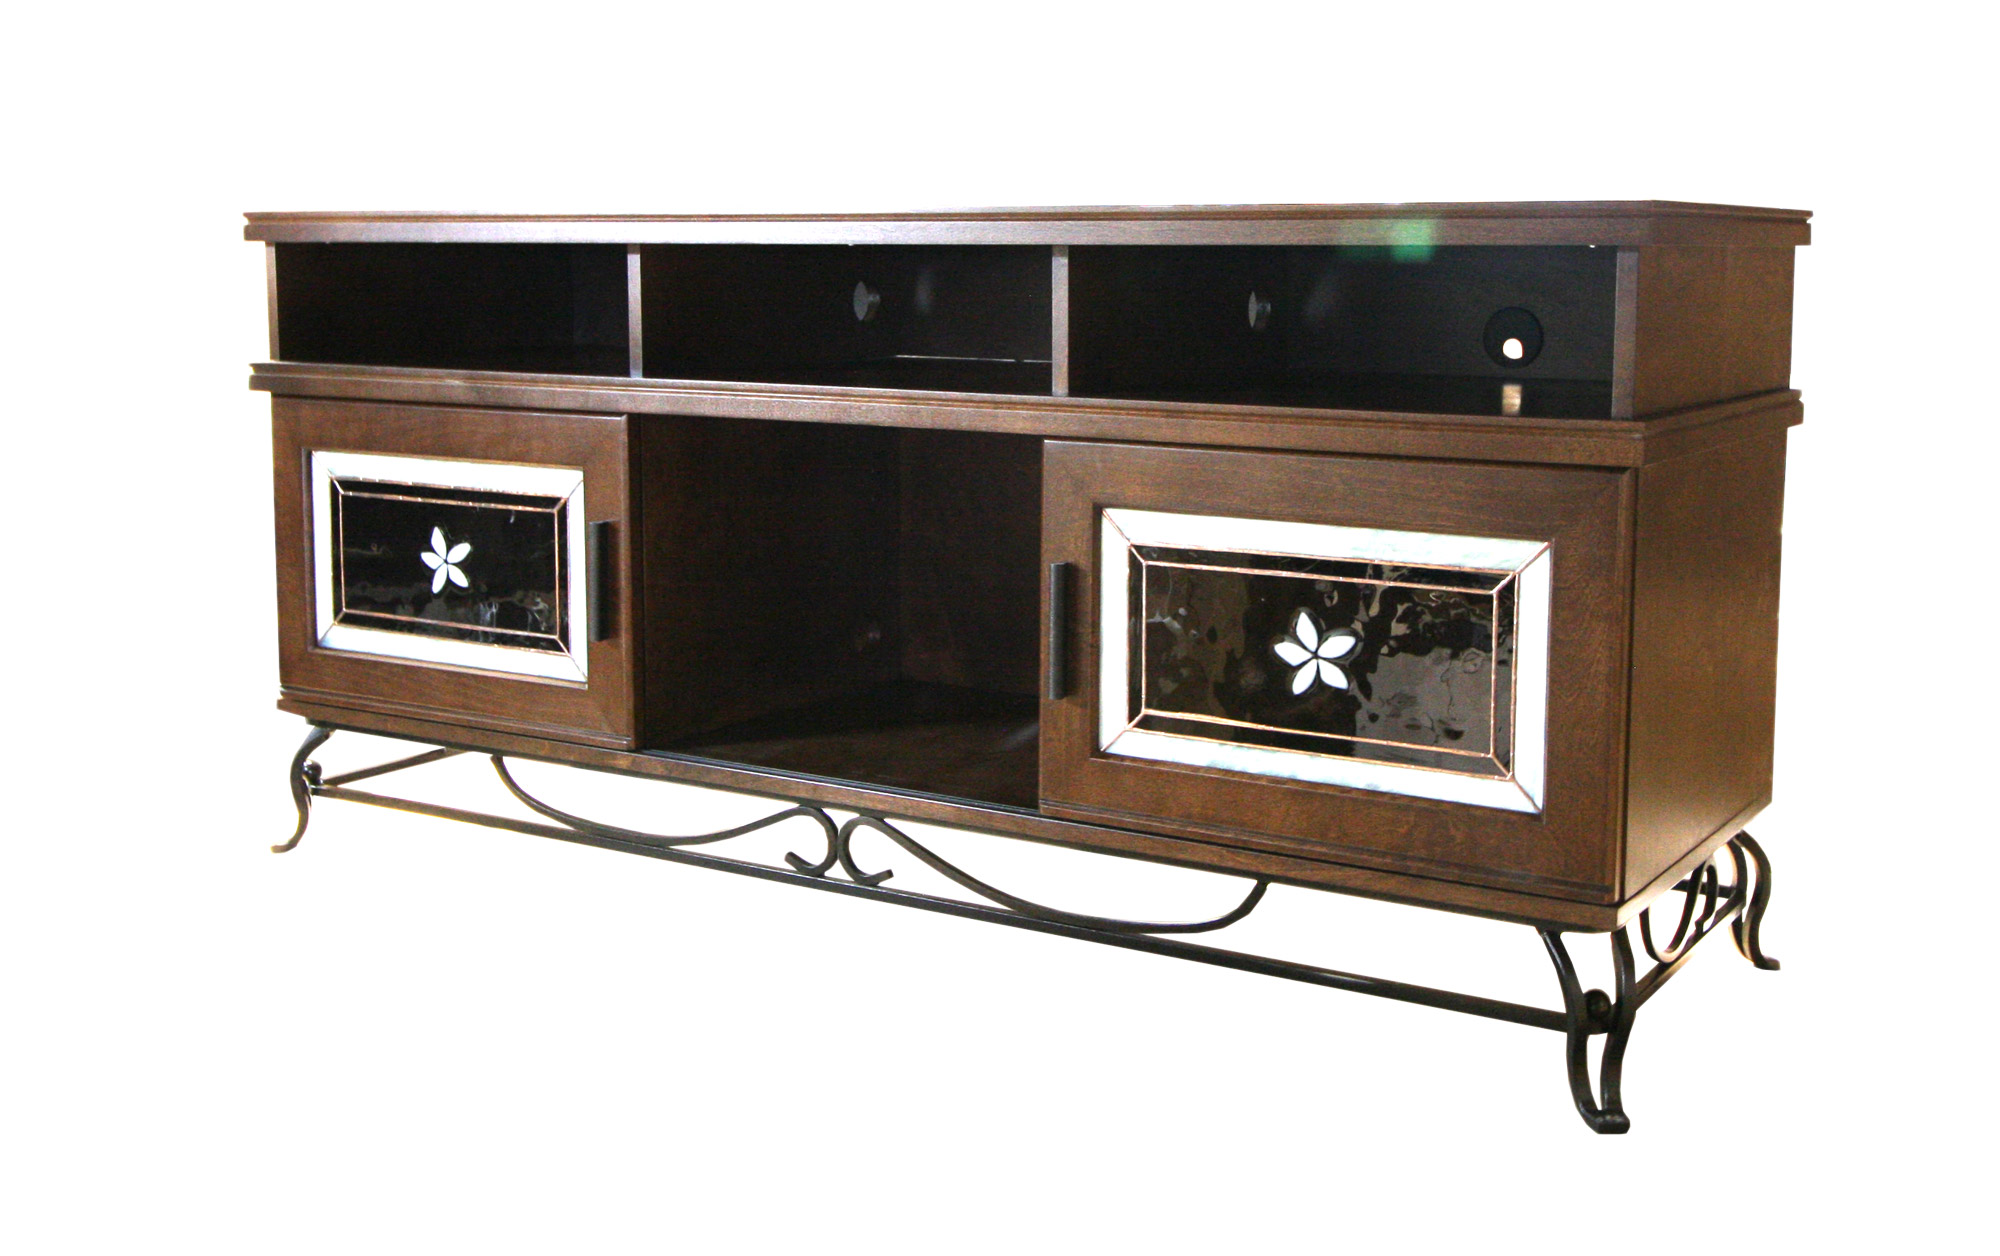 TV UNTI WITH STAINED GLASS DOORS